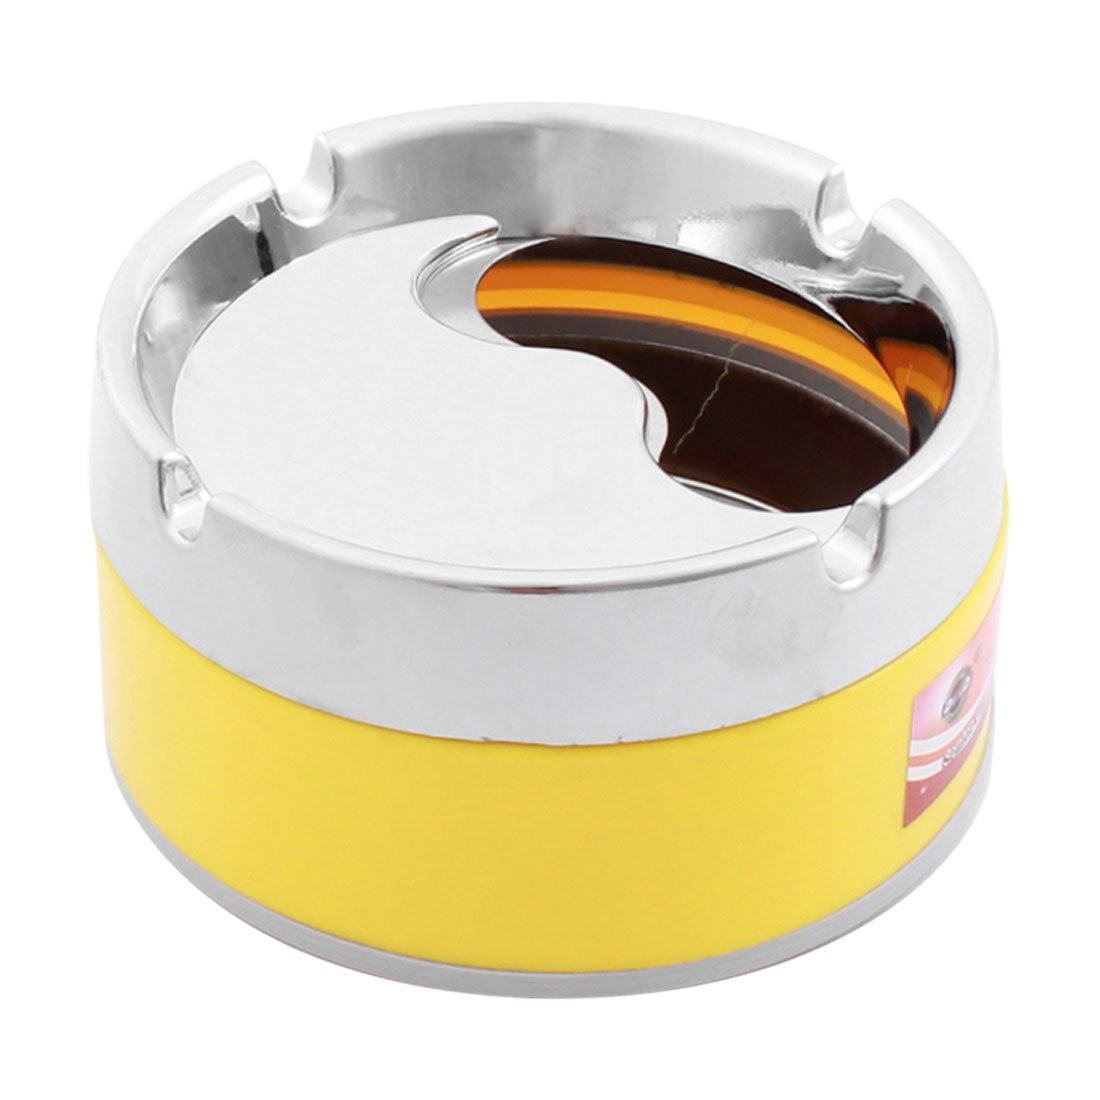 Silver Tone Yellow Plastic Alloy Cylinder Design Cigarette Holder Smoking Ashtray